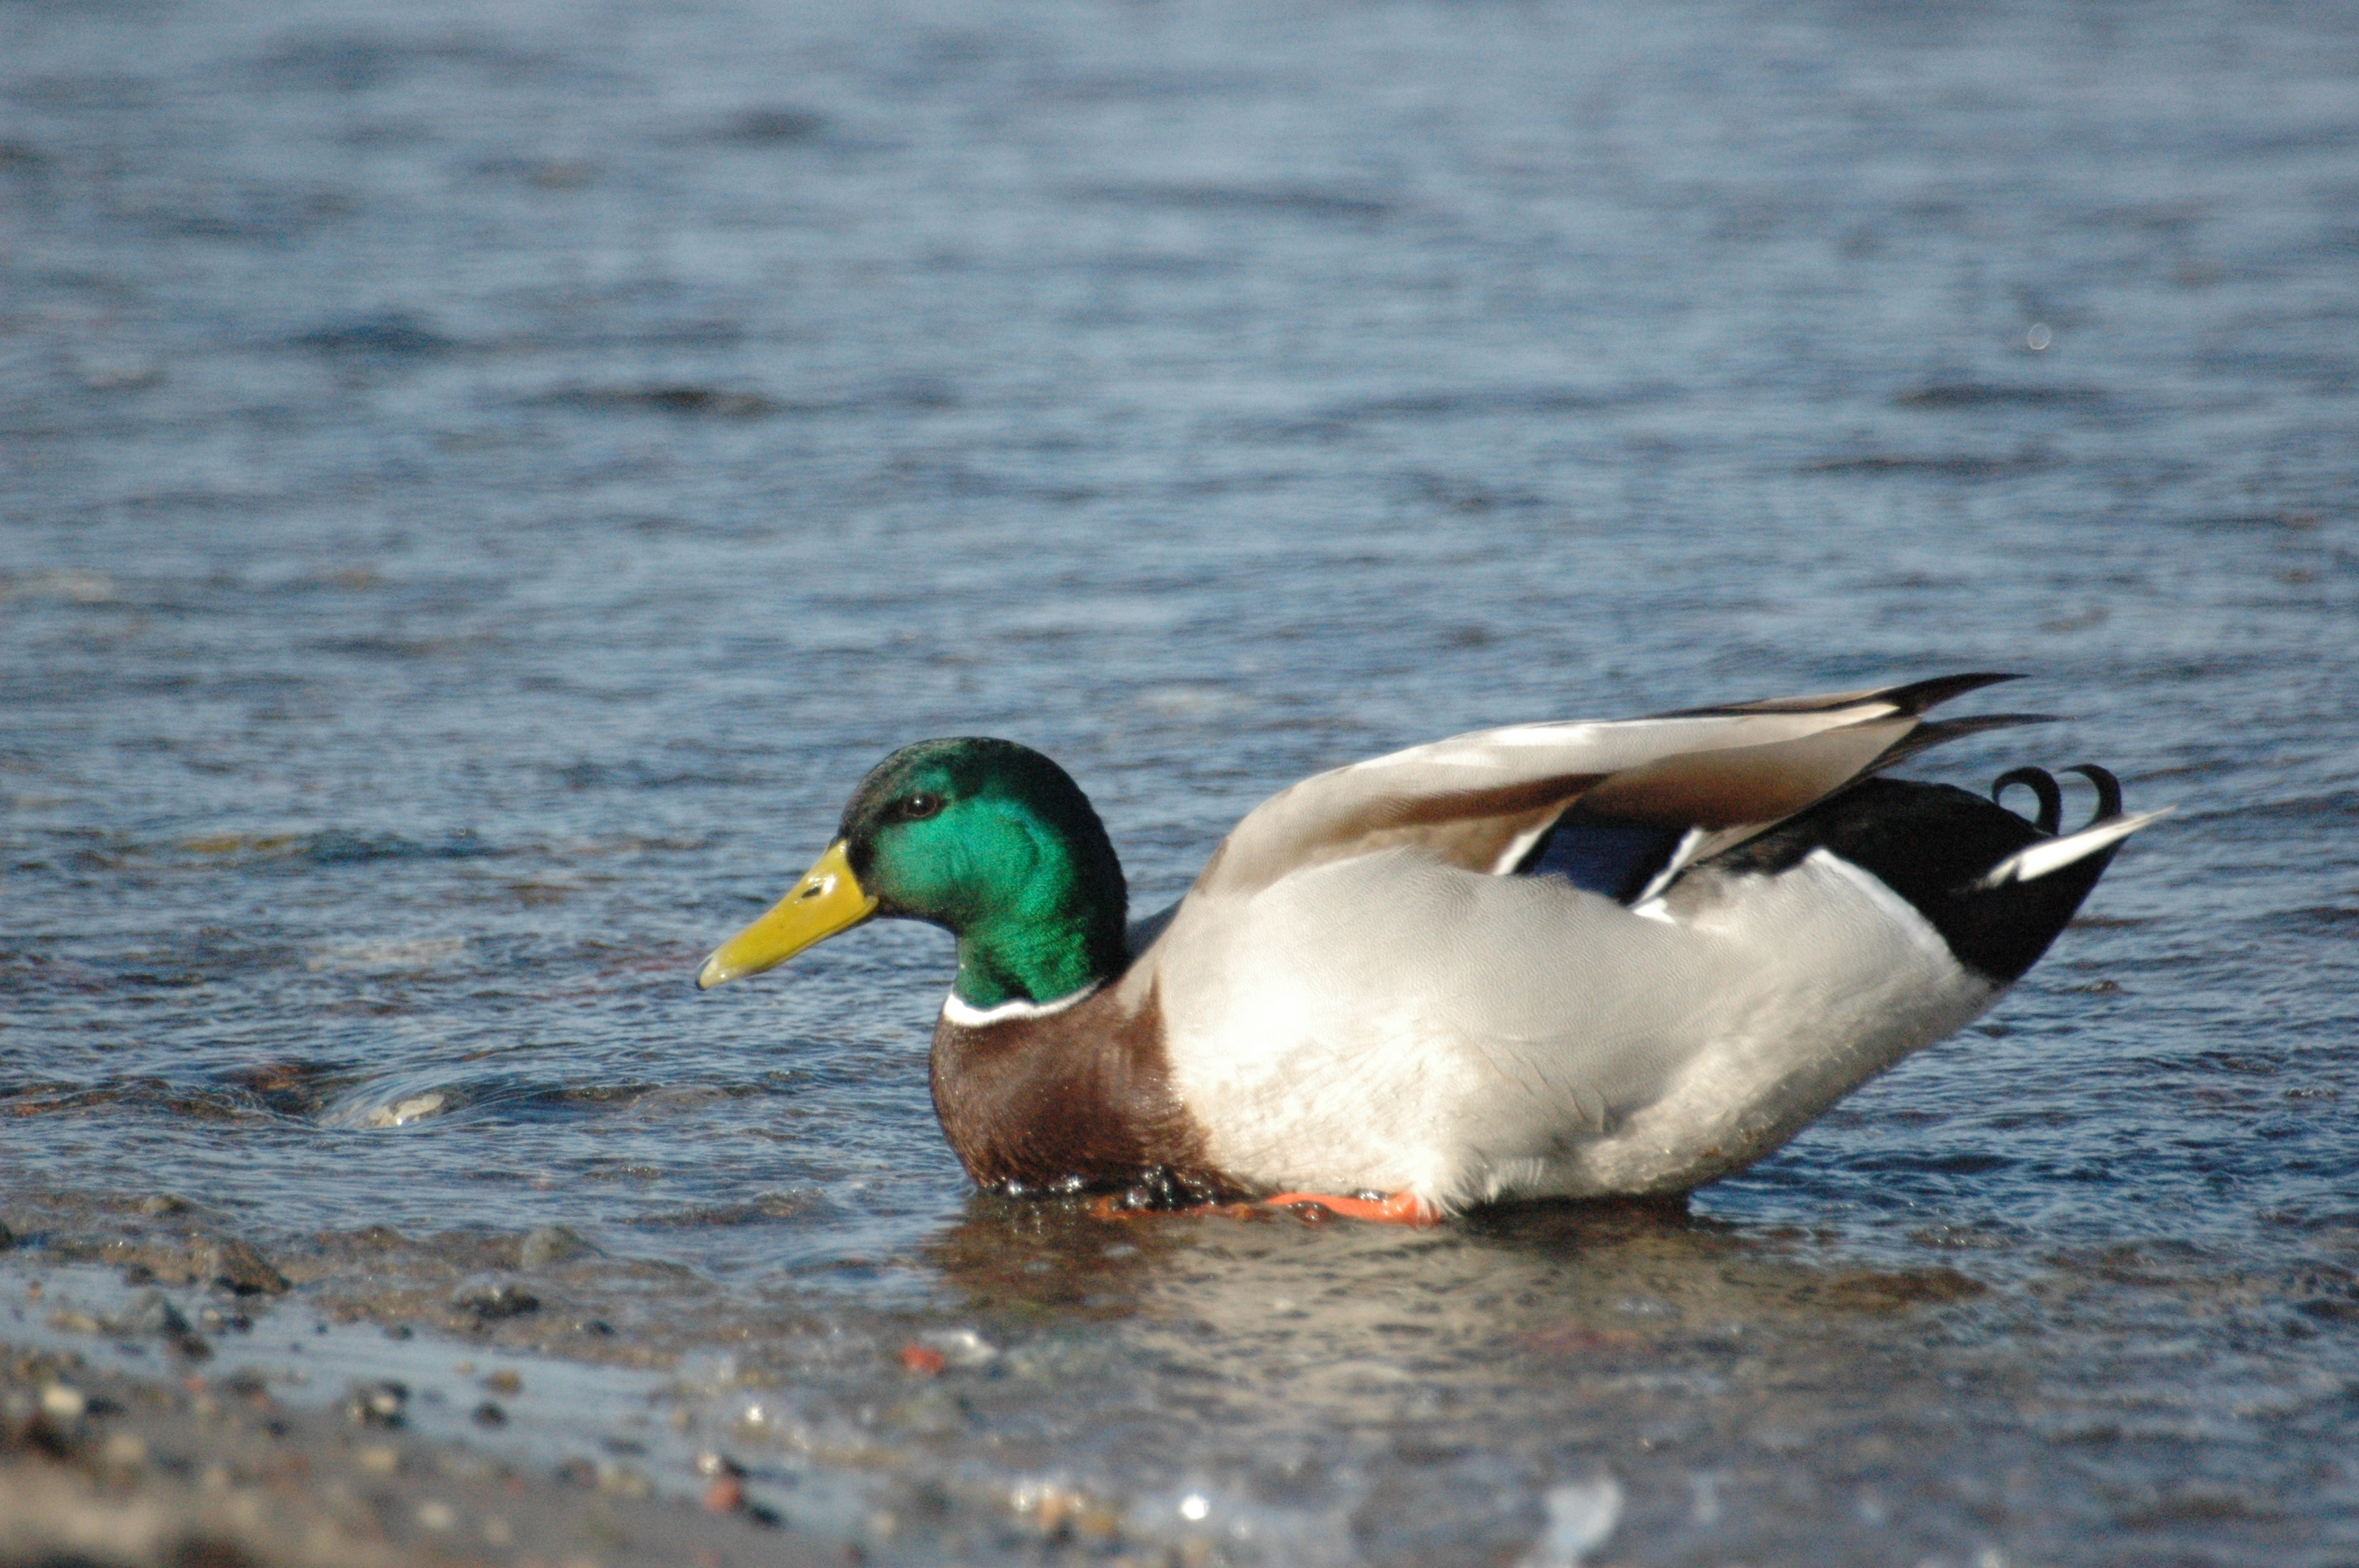 Wild Duck With Avian Flu In Alaska • Mirror Daily